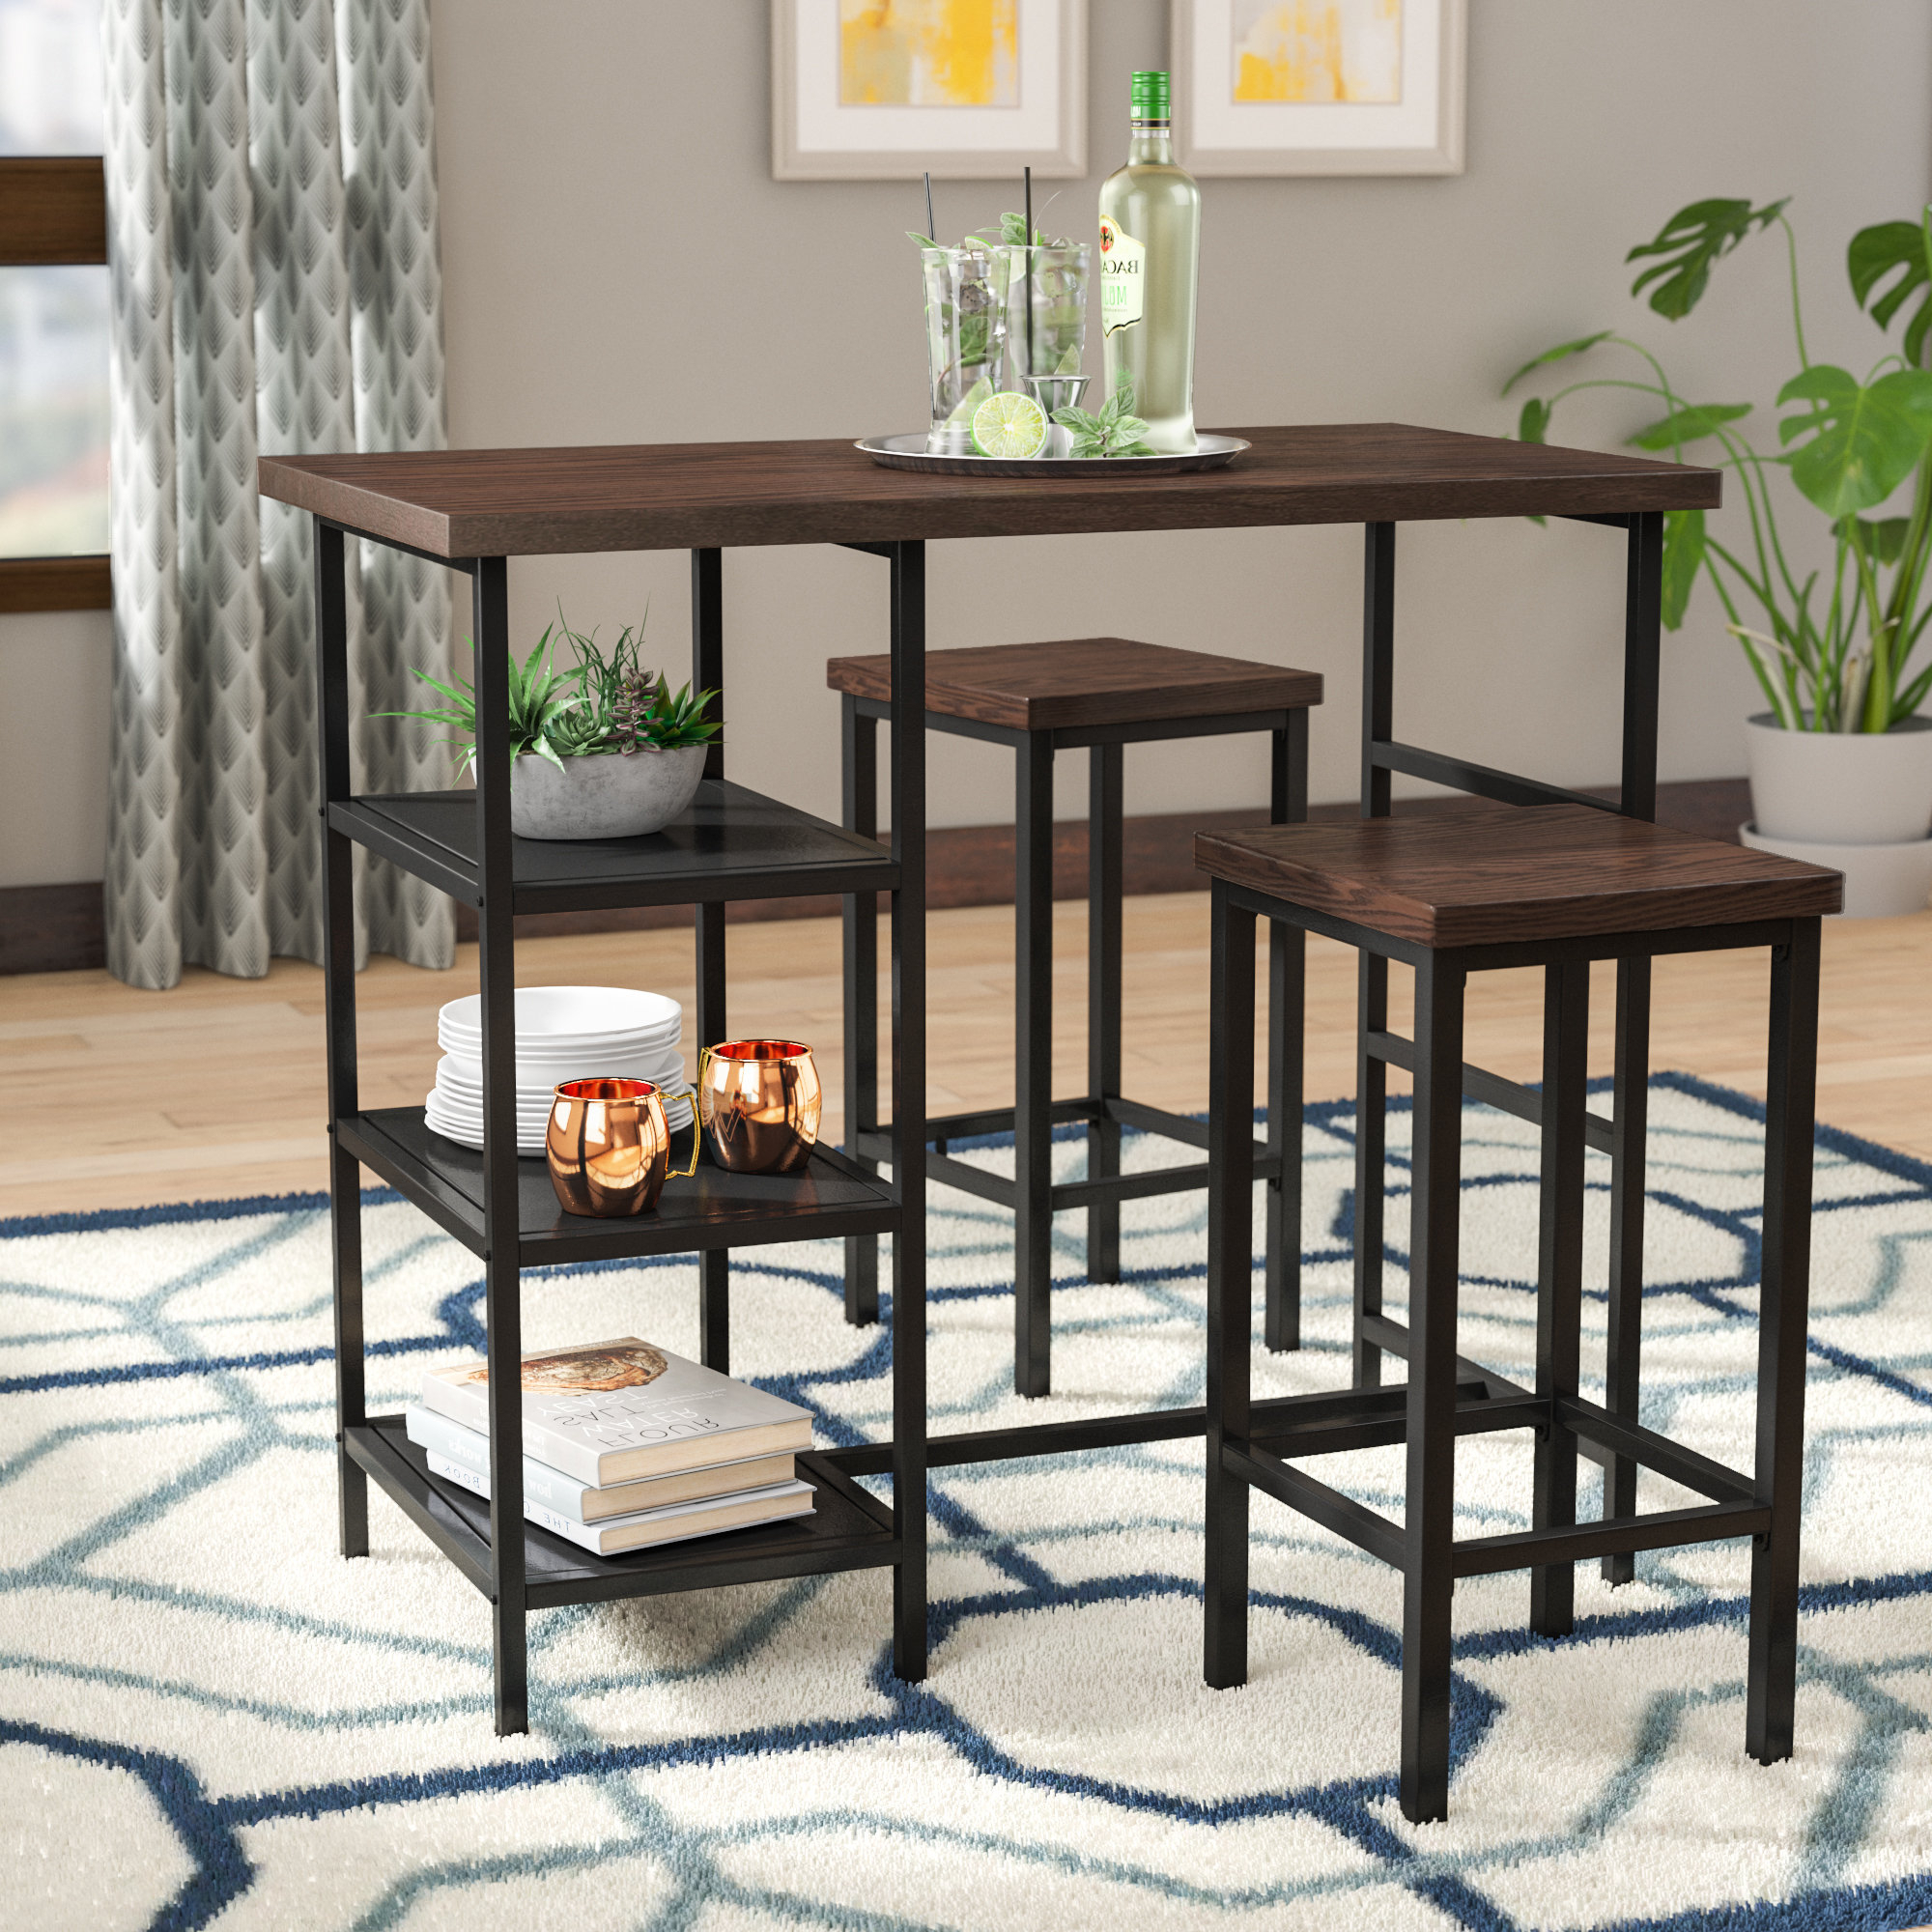 2019 Weatherholt Dining Tables Within Ivy Bronx Du Bois 3 Piece Pub Table Set & Reviews (View 14 of 25)